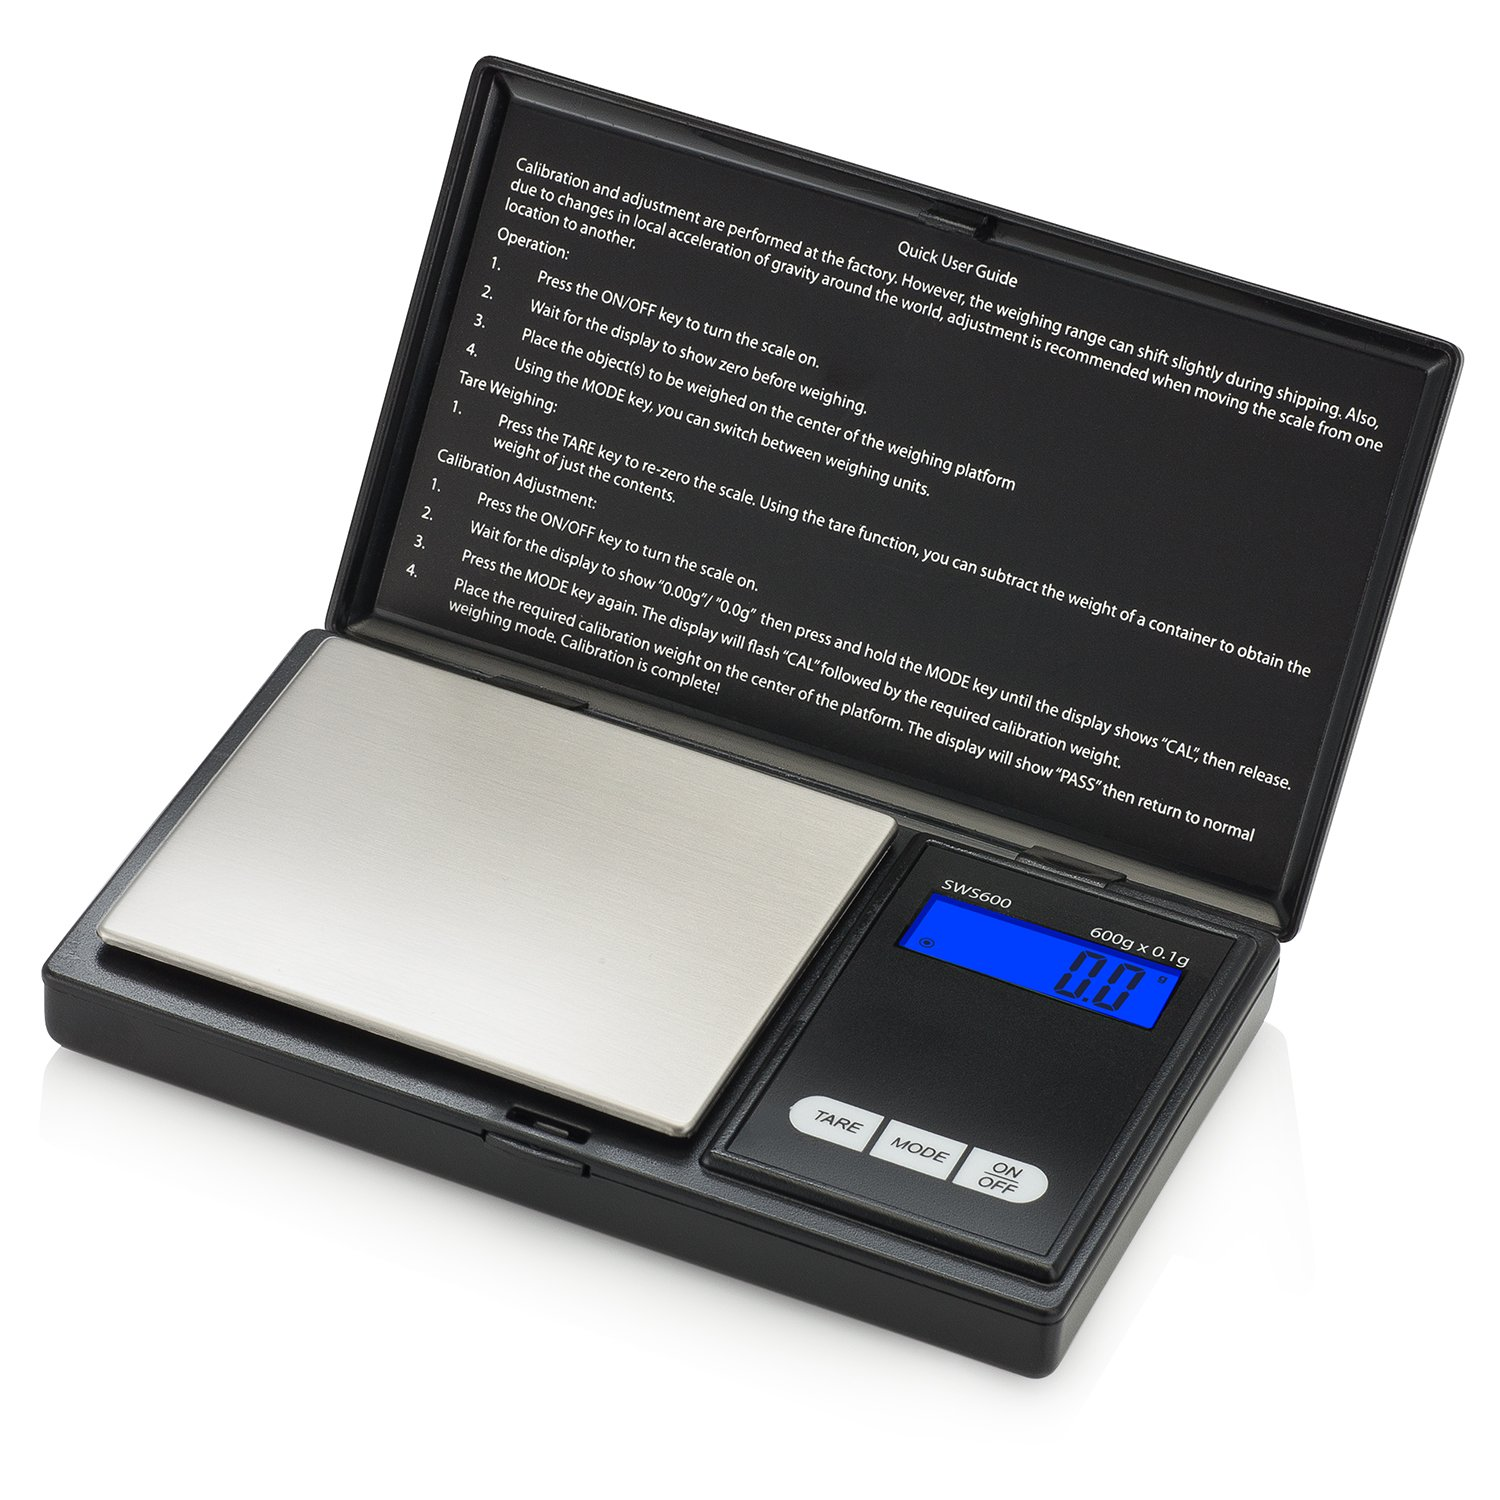 Smart Weigh Balanza de Bolsillo Digital Smart Weigh SWS600 de 600 x 0.1g: Amazon.es: Oficina y papelería